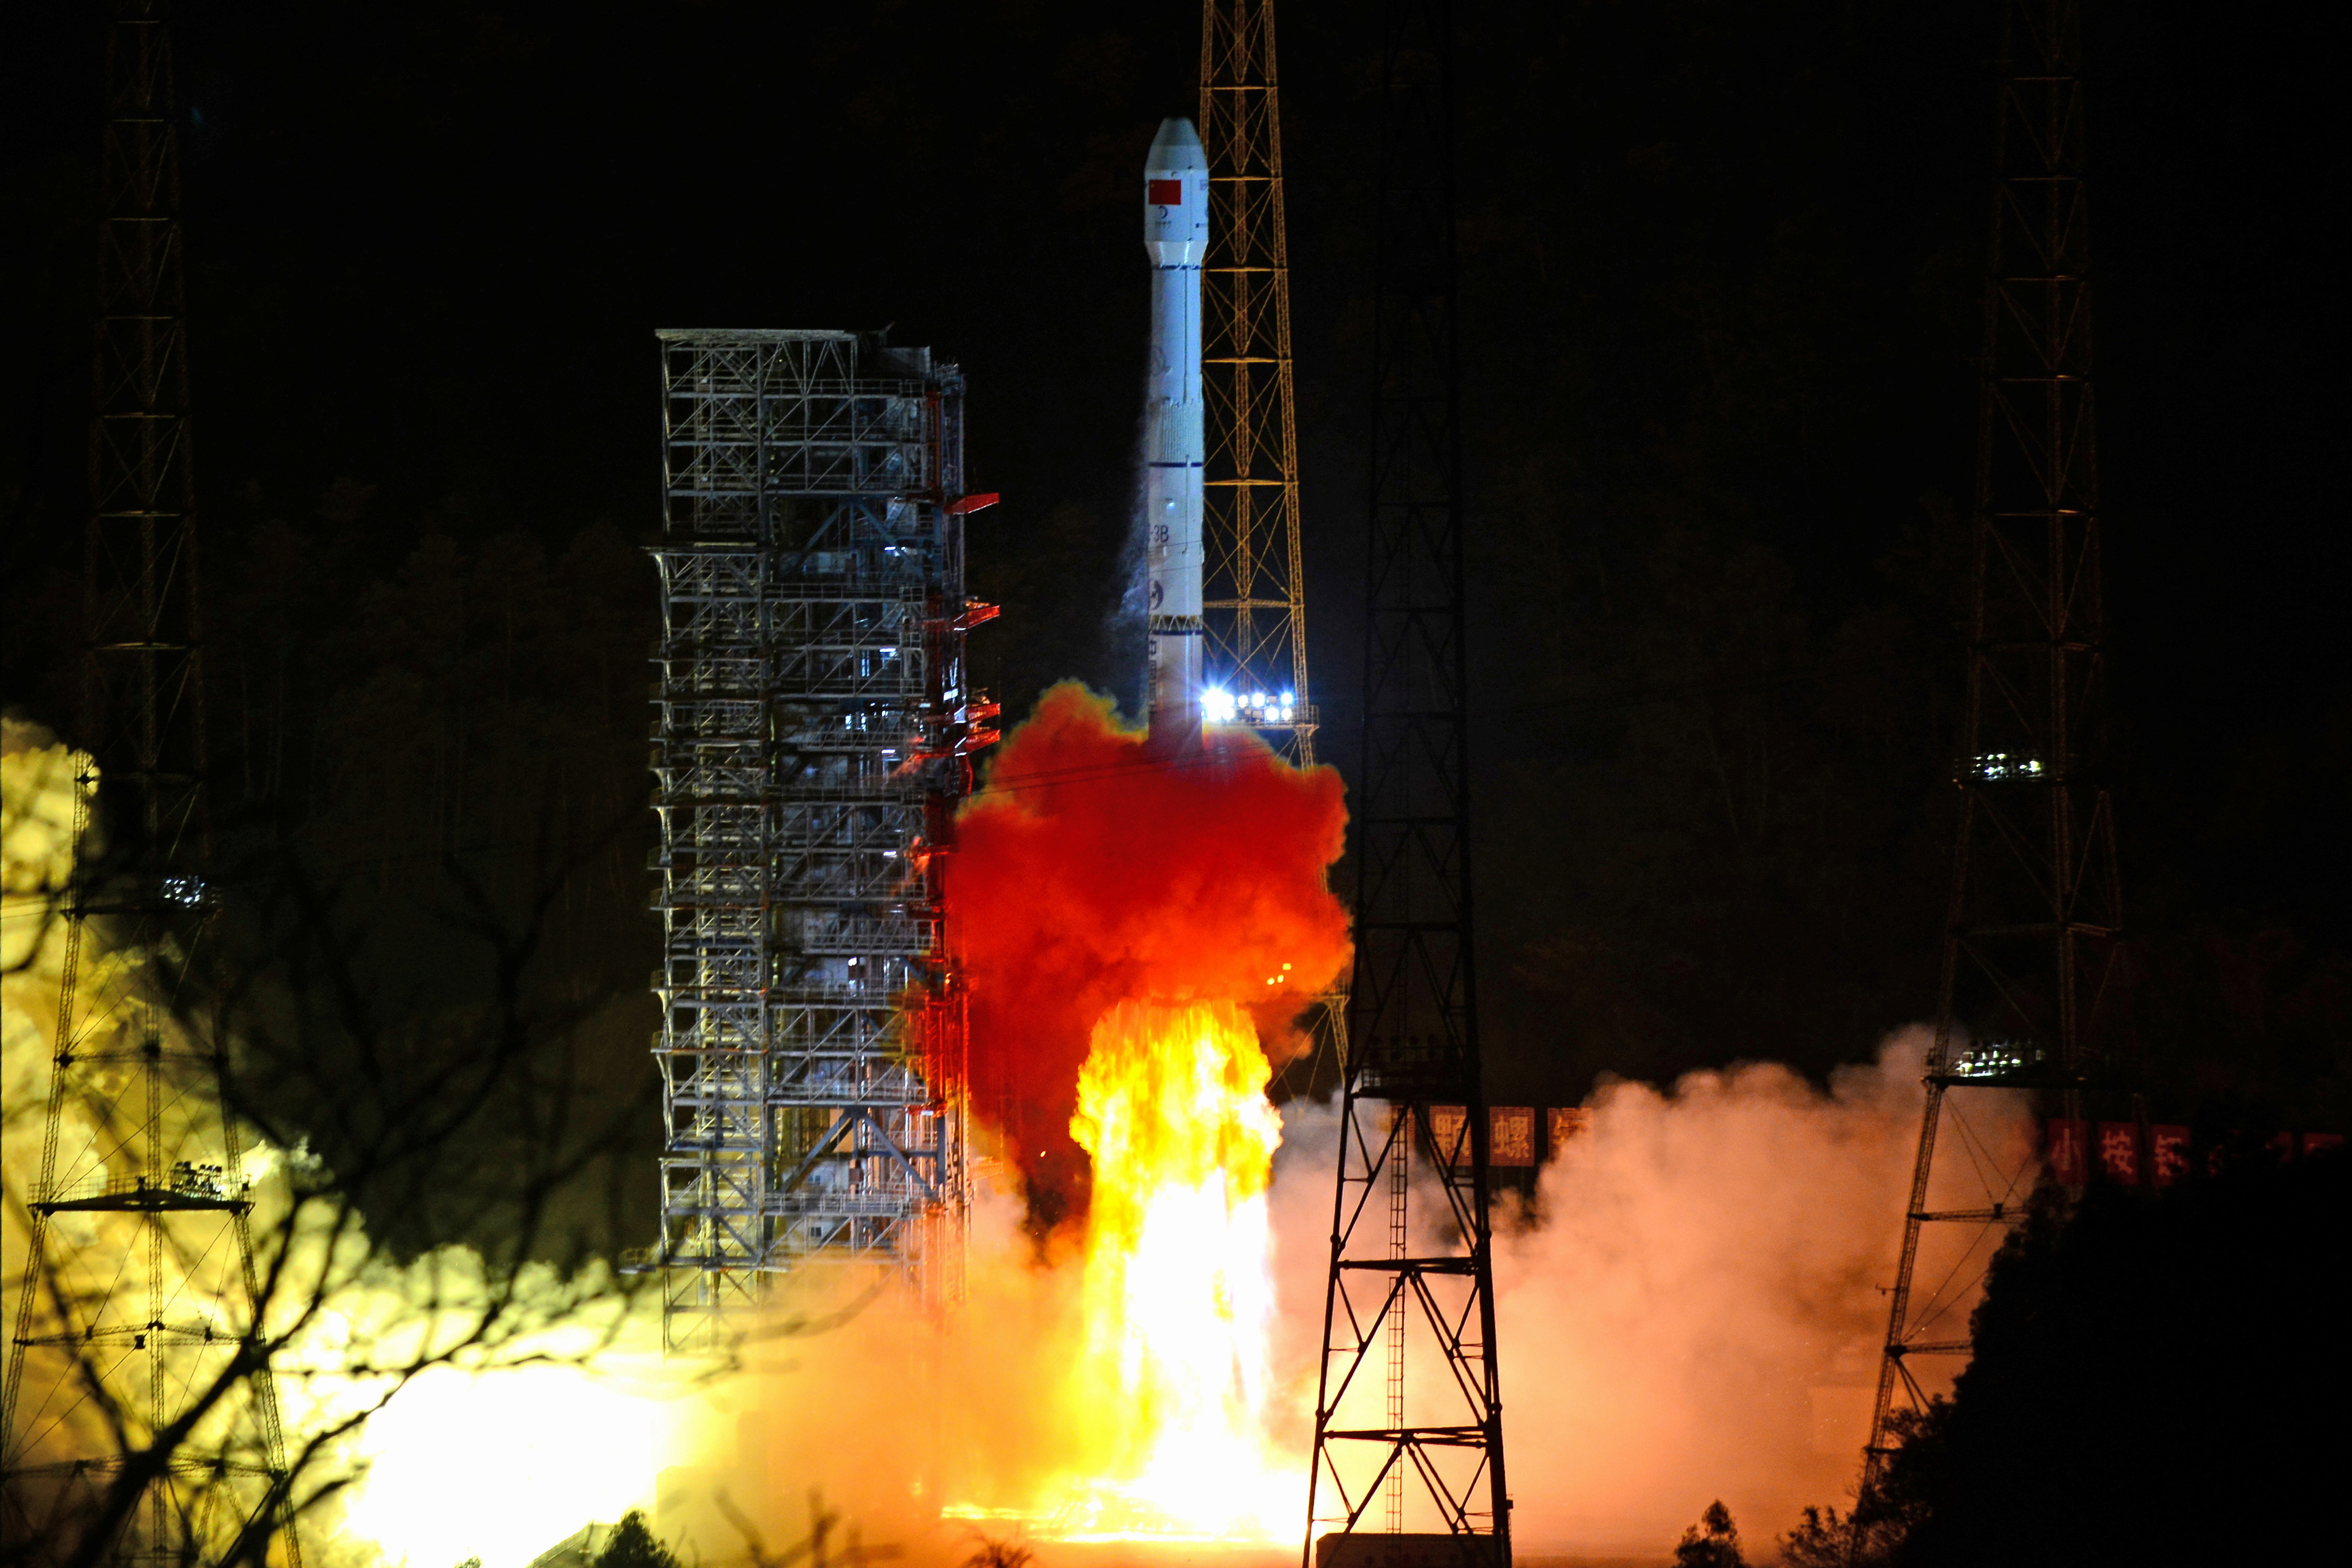 A Long March-3B rocket carrying Chang'e 4 lunar probe takes off from the Xichang Satellite Launch Center in Sichuan province, China December 8, 2018.  REUTERS/Stringer ATTENTION EDITORS - THIS IMAGE WAS PROVIDED BY A THIRD PARTY. CHINA OUT. - RC16A092E350